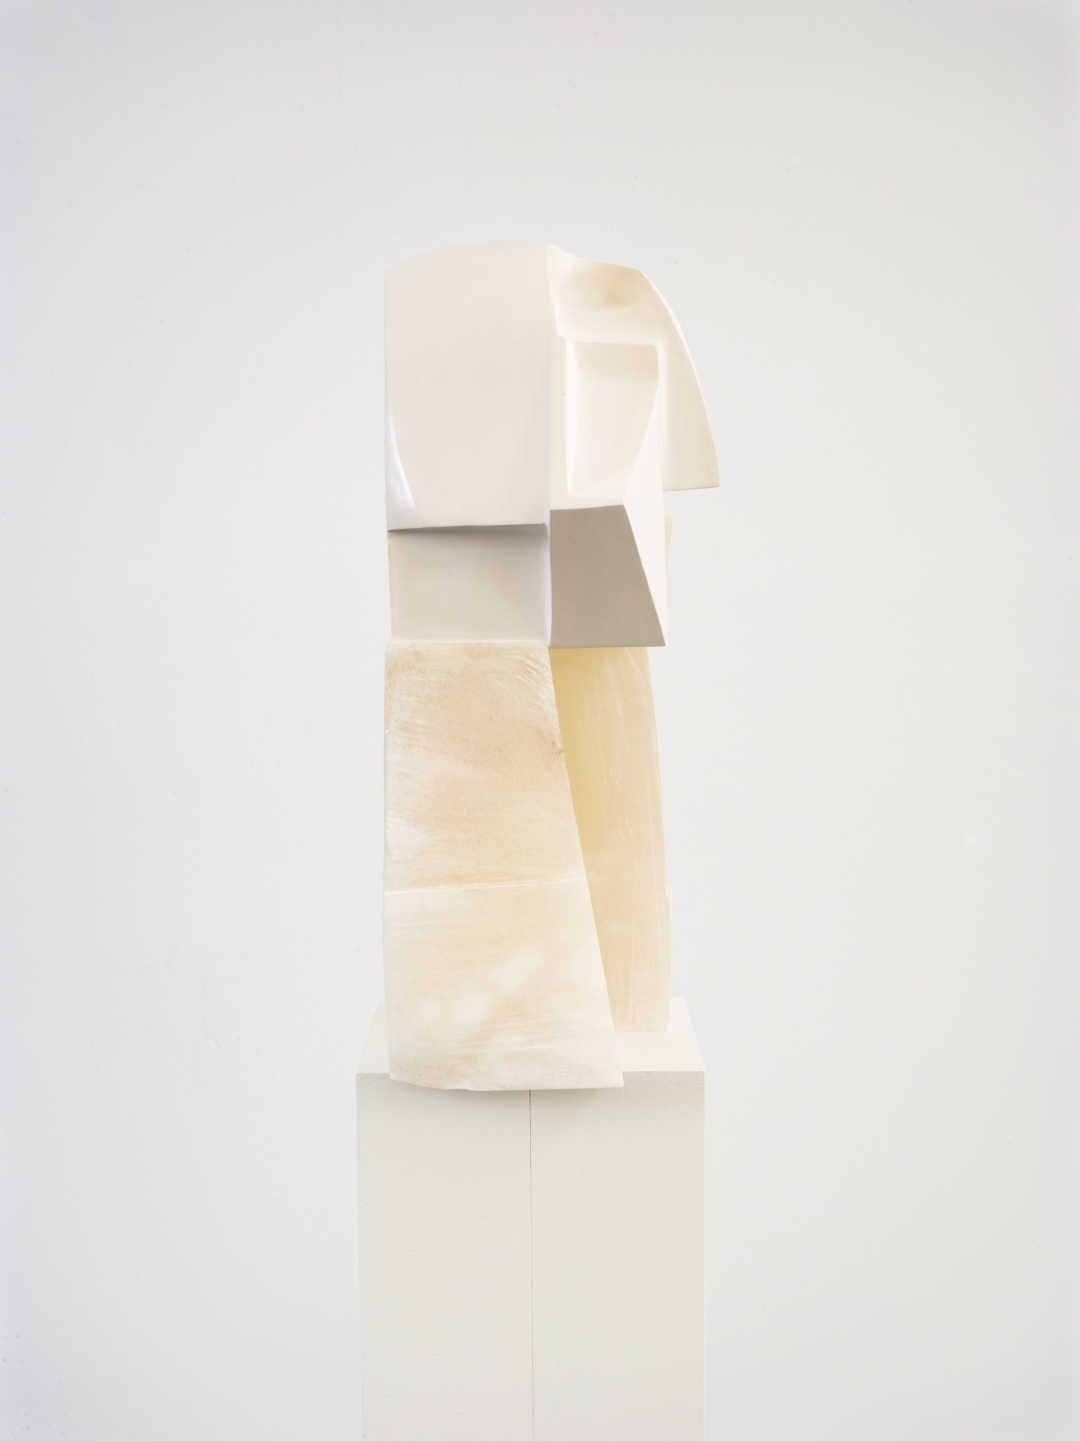 Christina Kruse, <i>The Directionalist</i>, 2021, plaster, wax, alabaster, 12 x 21 x 9 in. (30.5 x 53.3 x 22.9 cm)., 2 out of 3 editions available